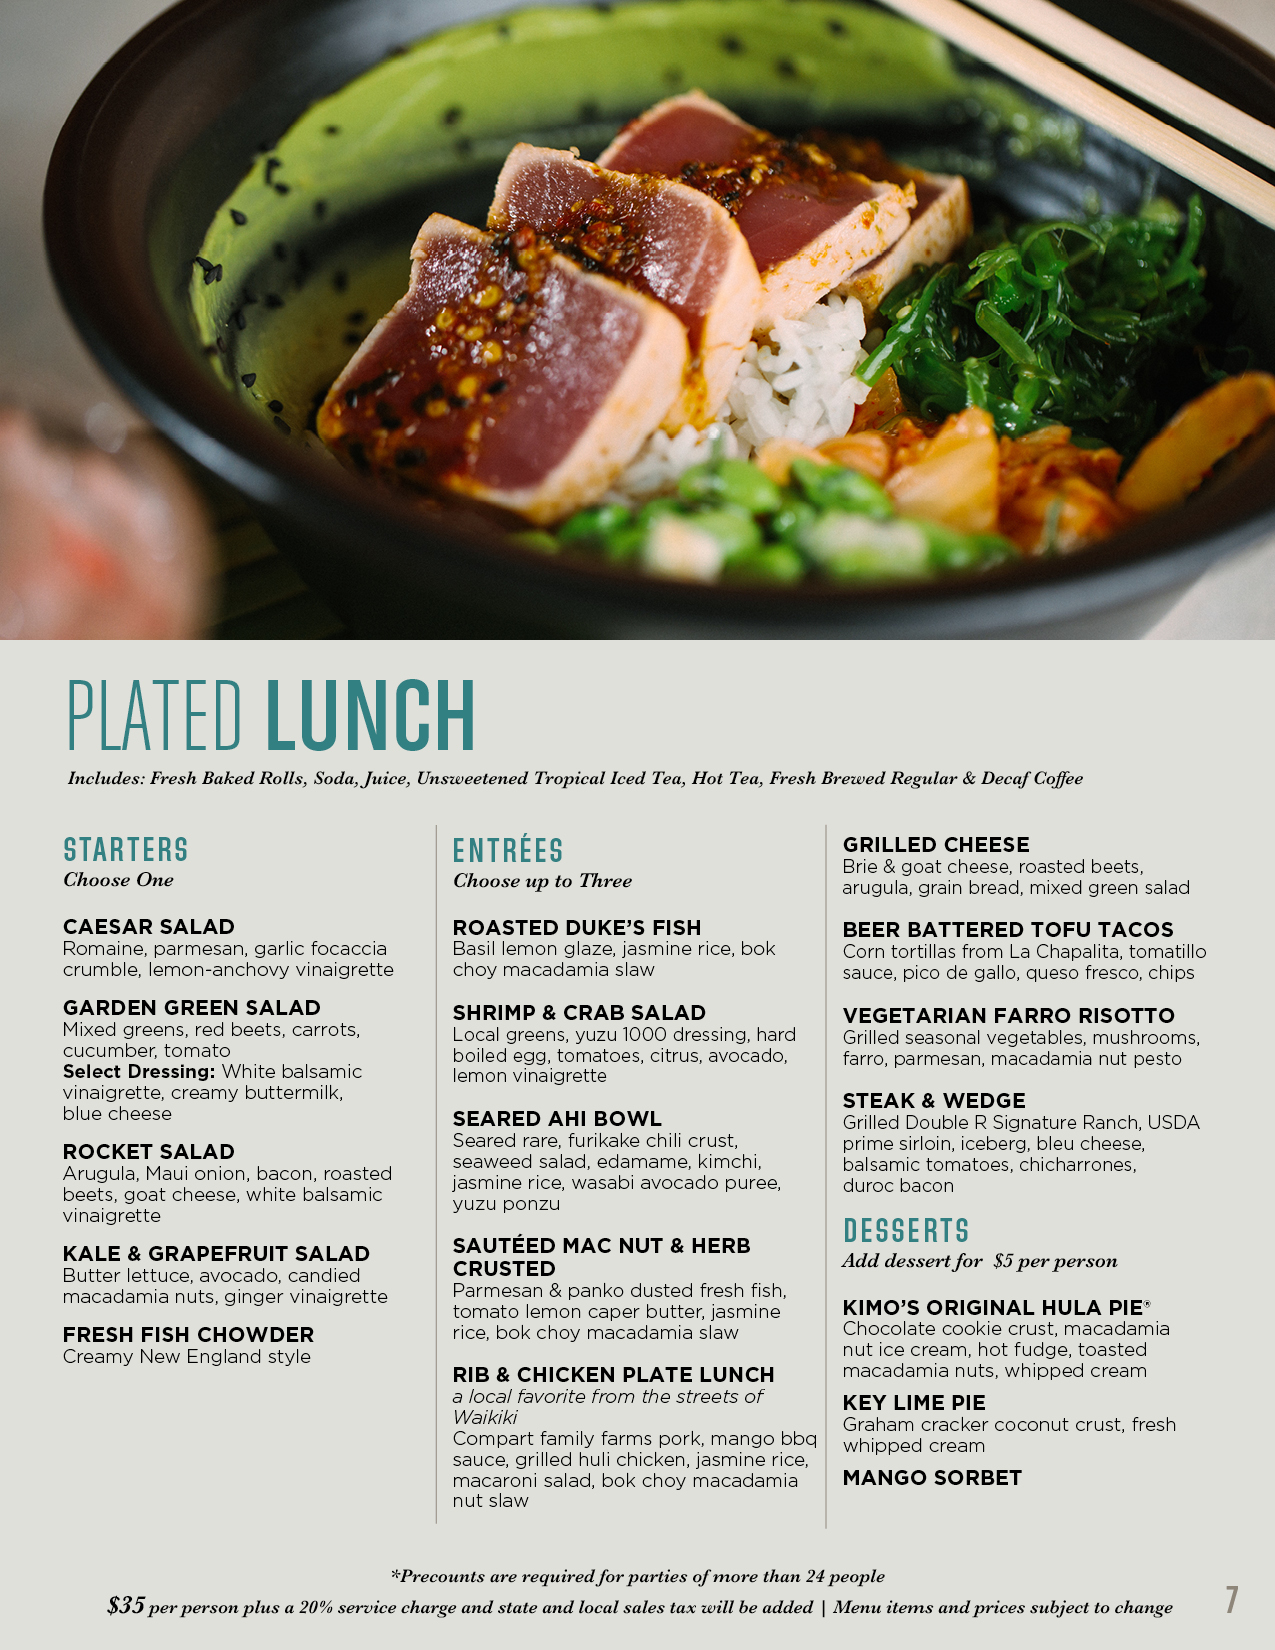 Plated lunch menu